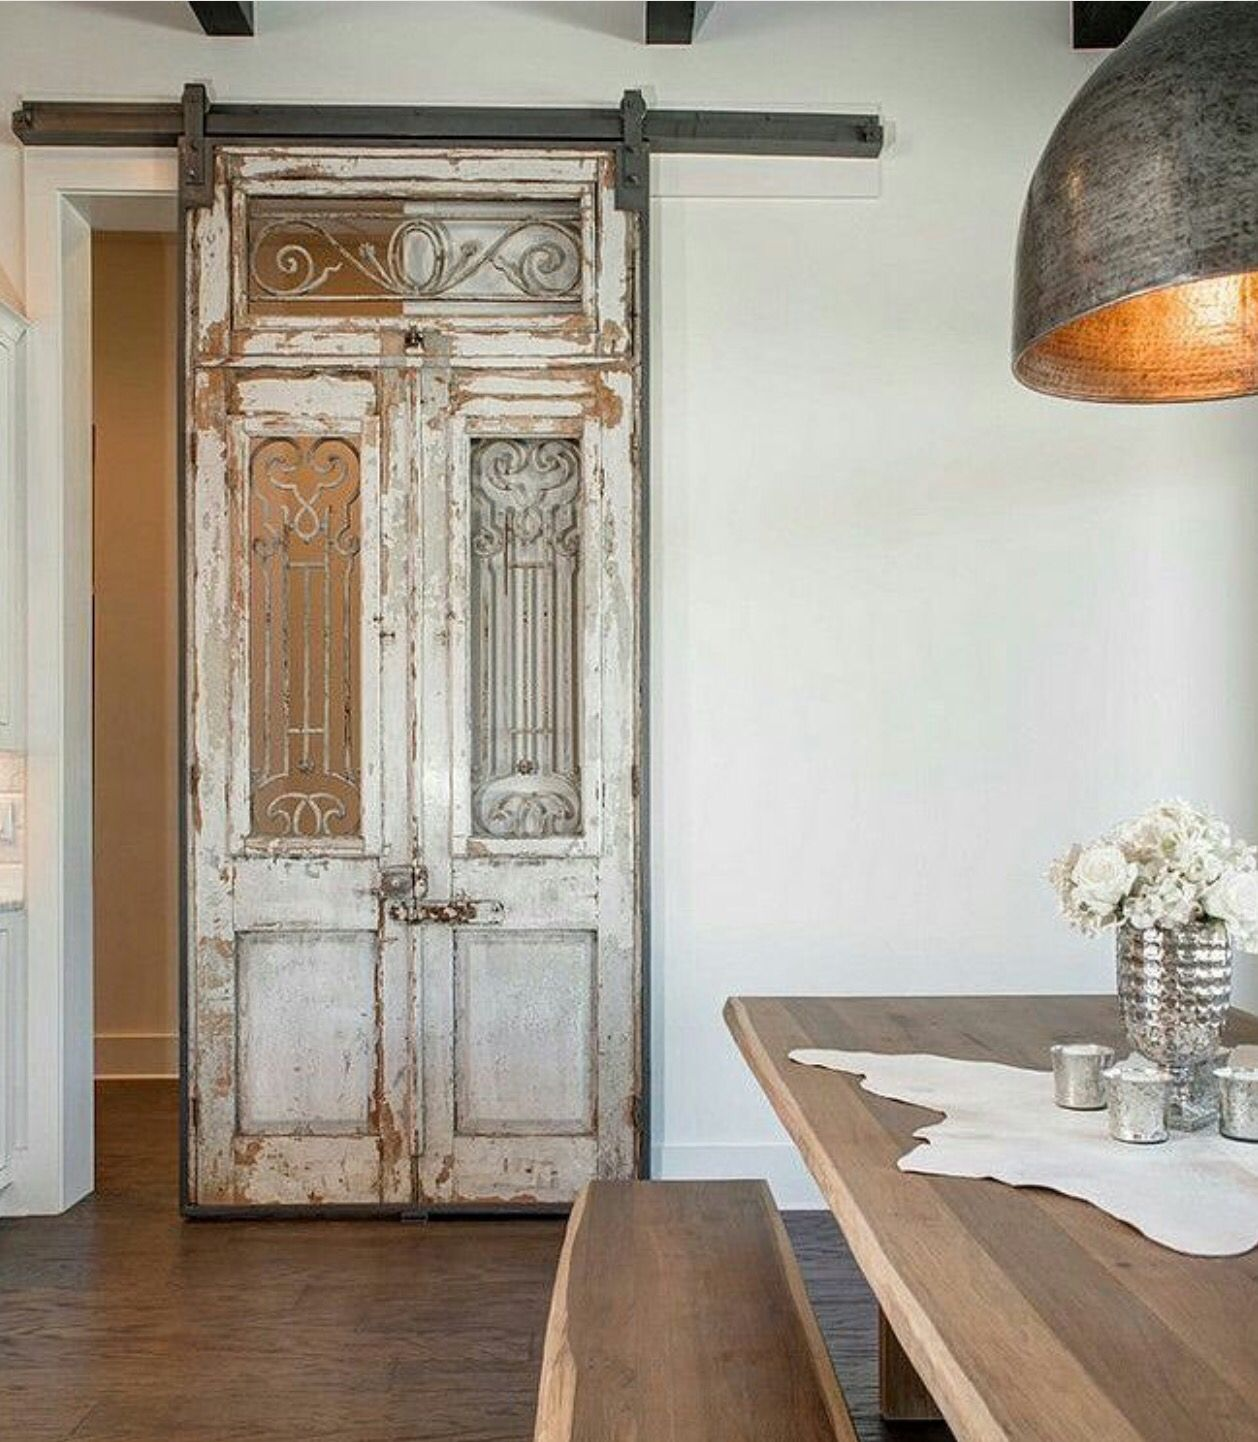 Antique doors | Interior Barn Doors | Pinterest | Antique doors ...